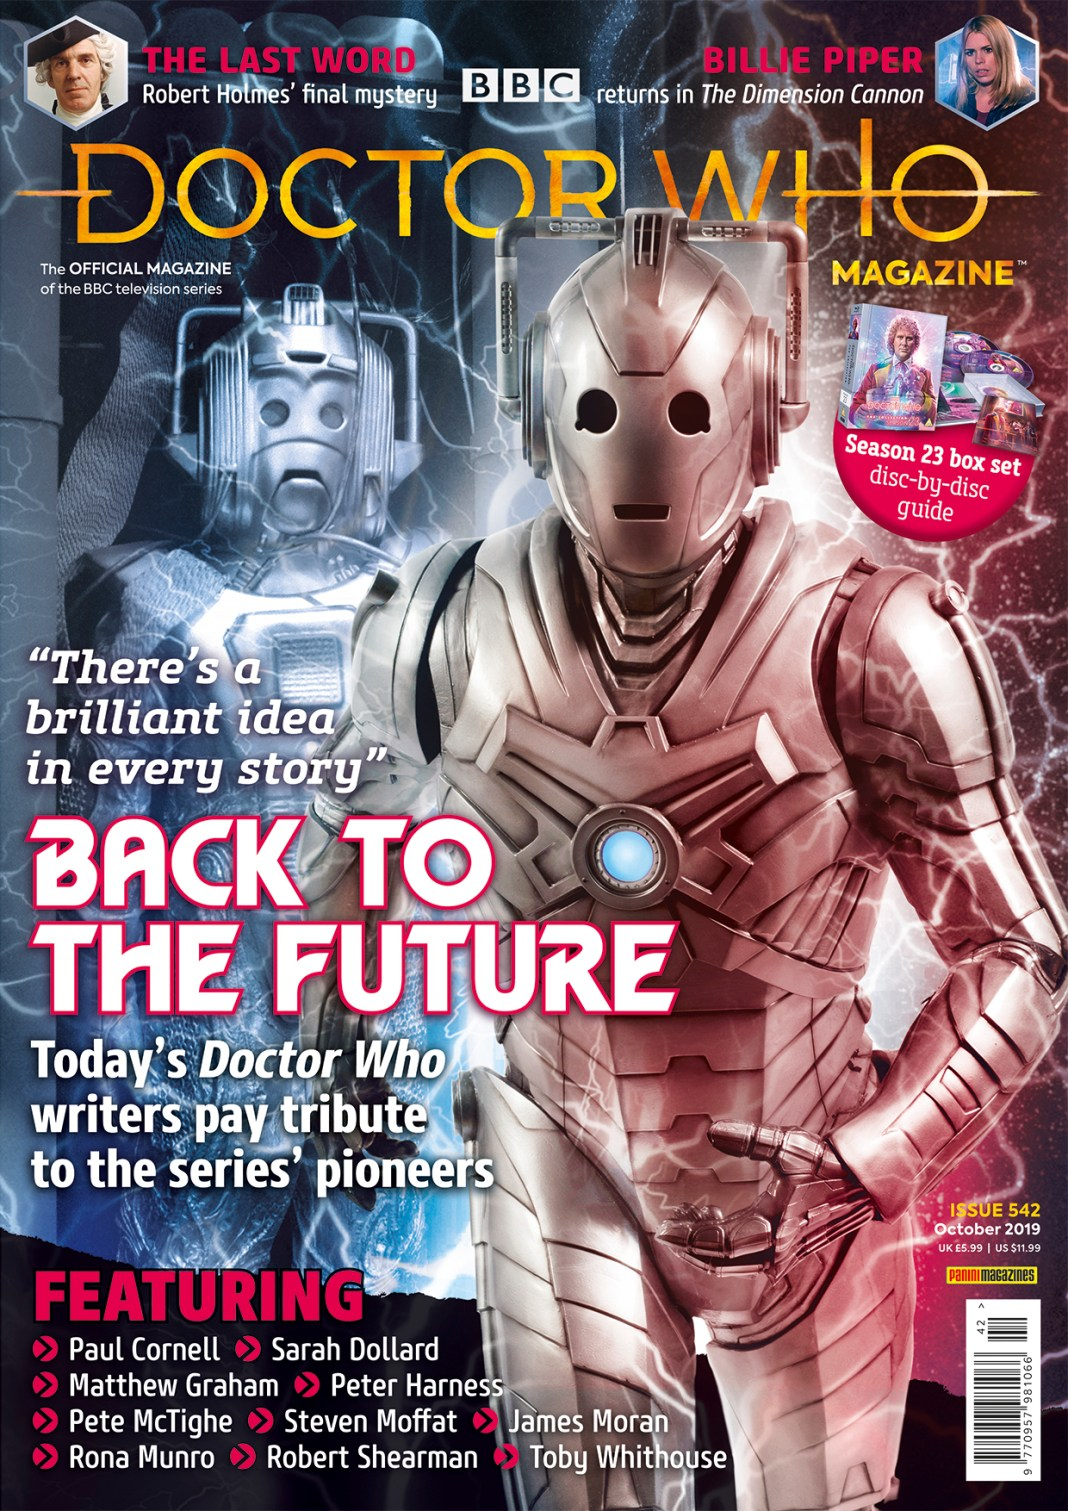 Doctor Who Magazine 542 Cover (c) Panini